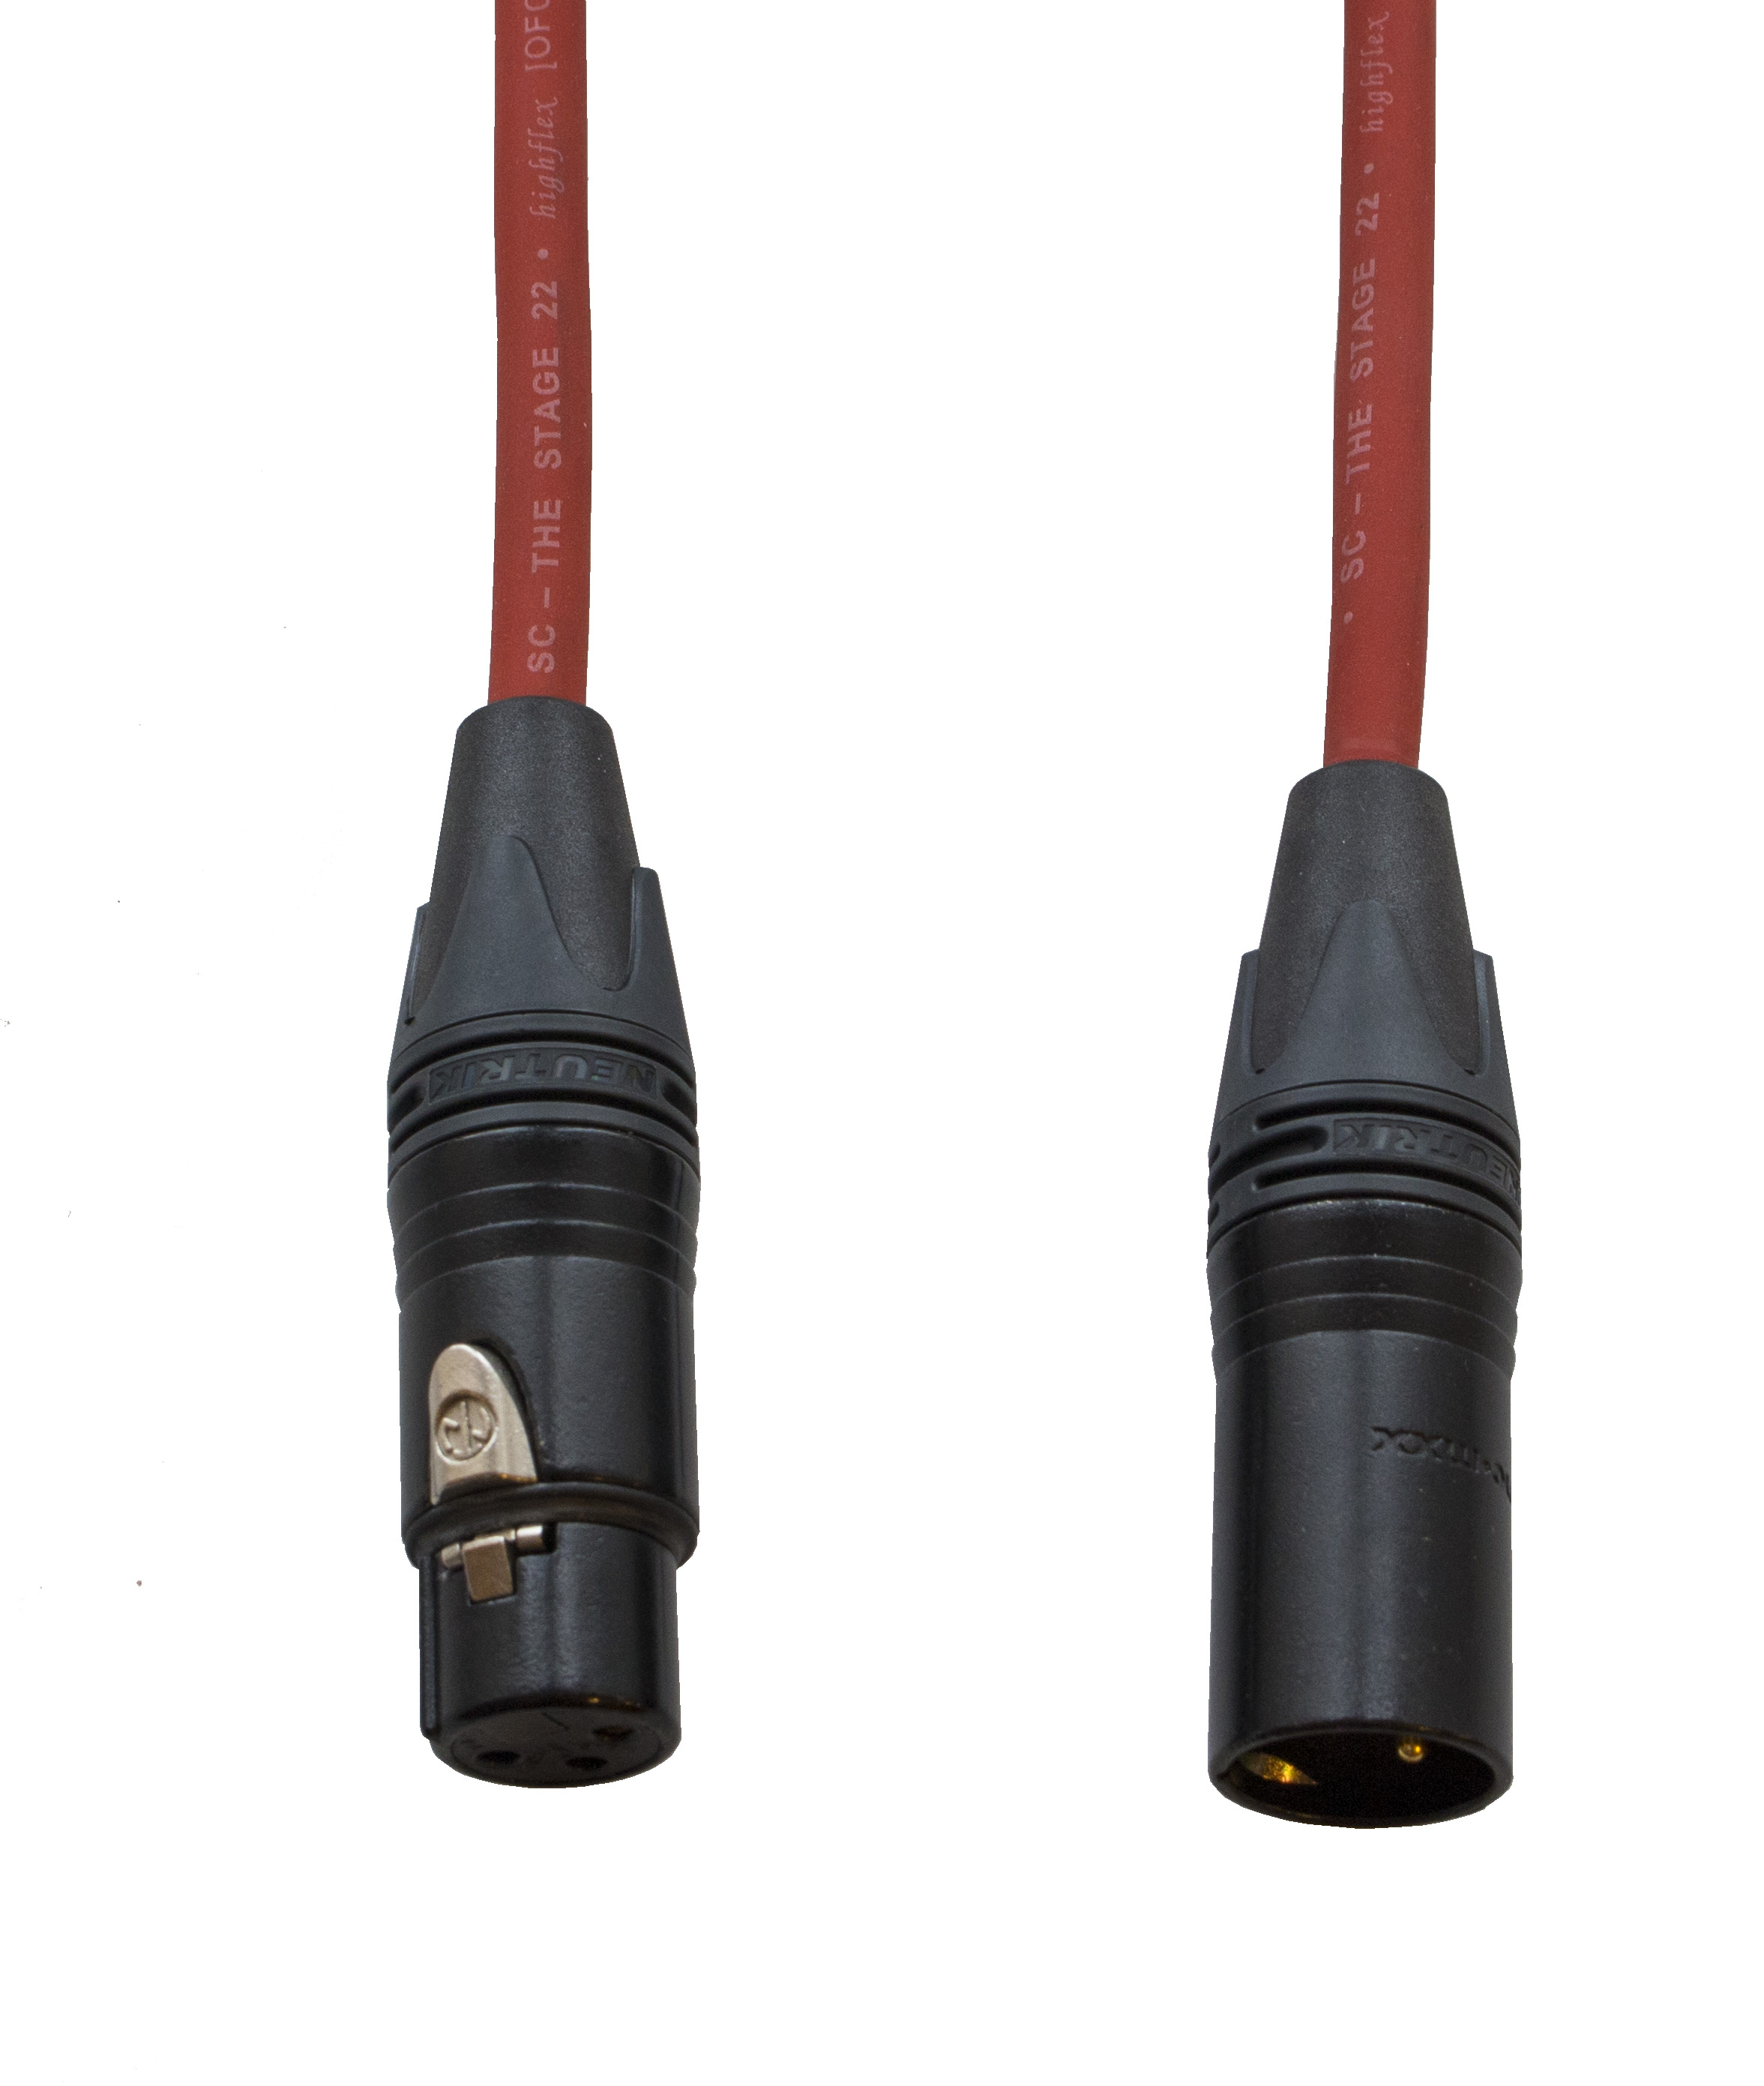 Audiokabel XLR konektor Neutrik poz. male/female  50 m, Sommer červený